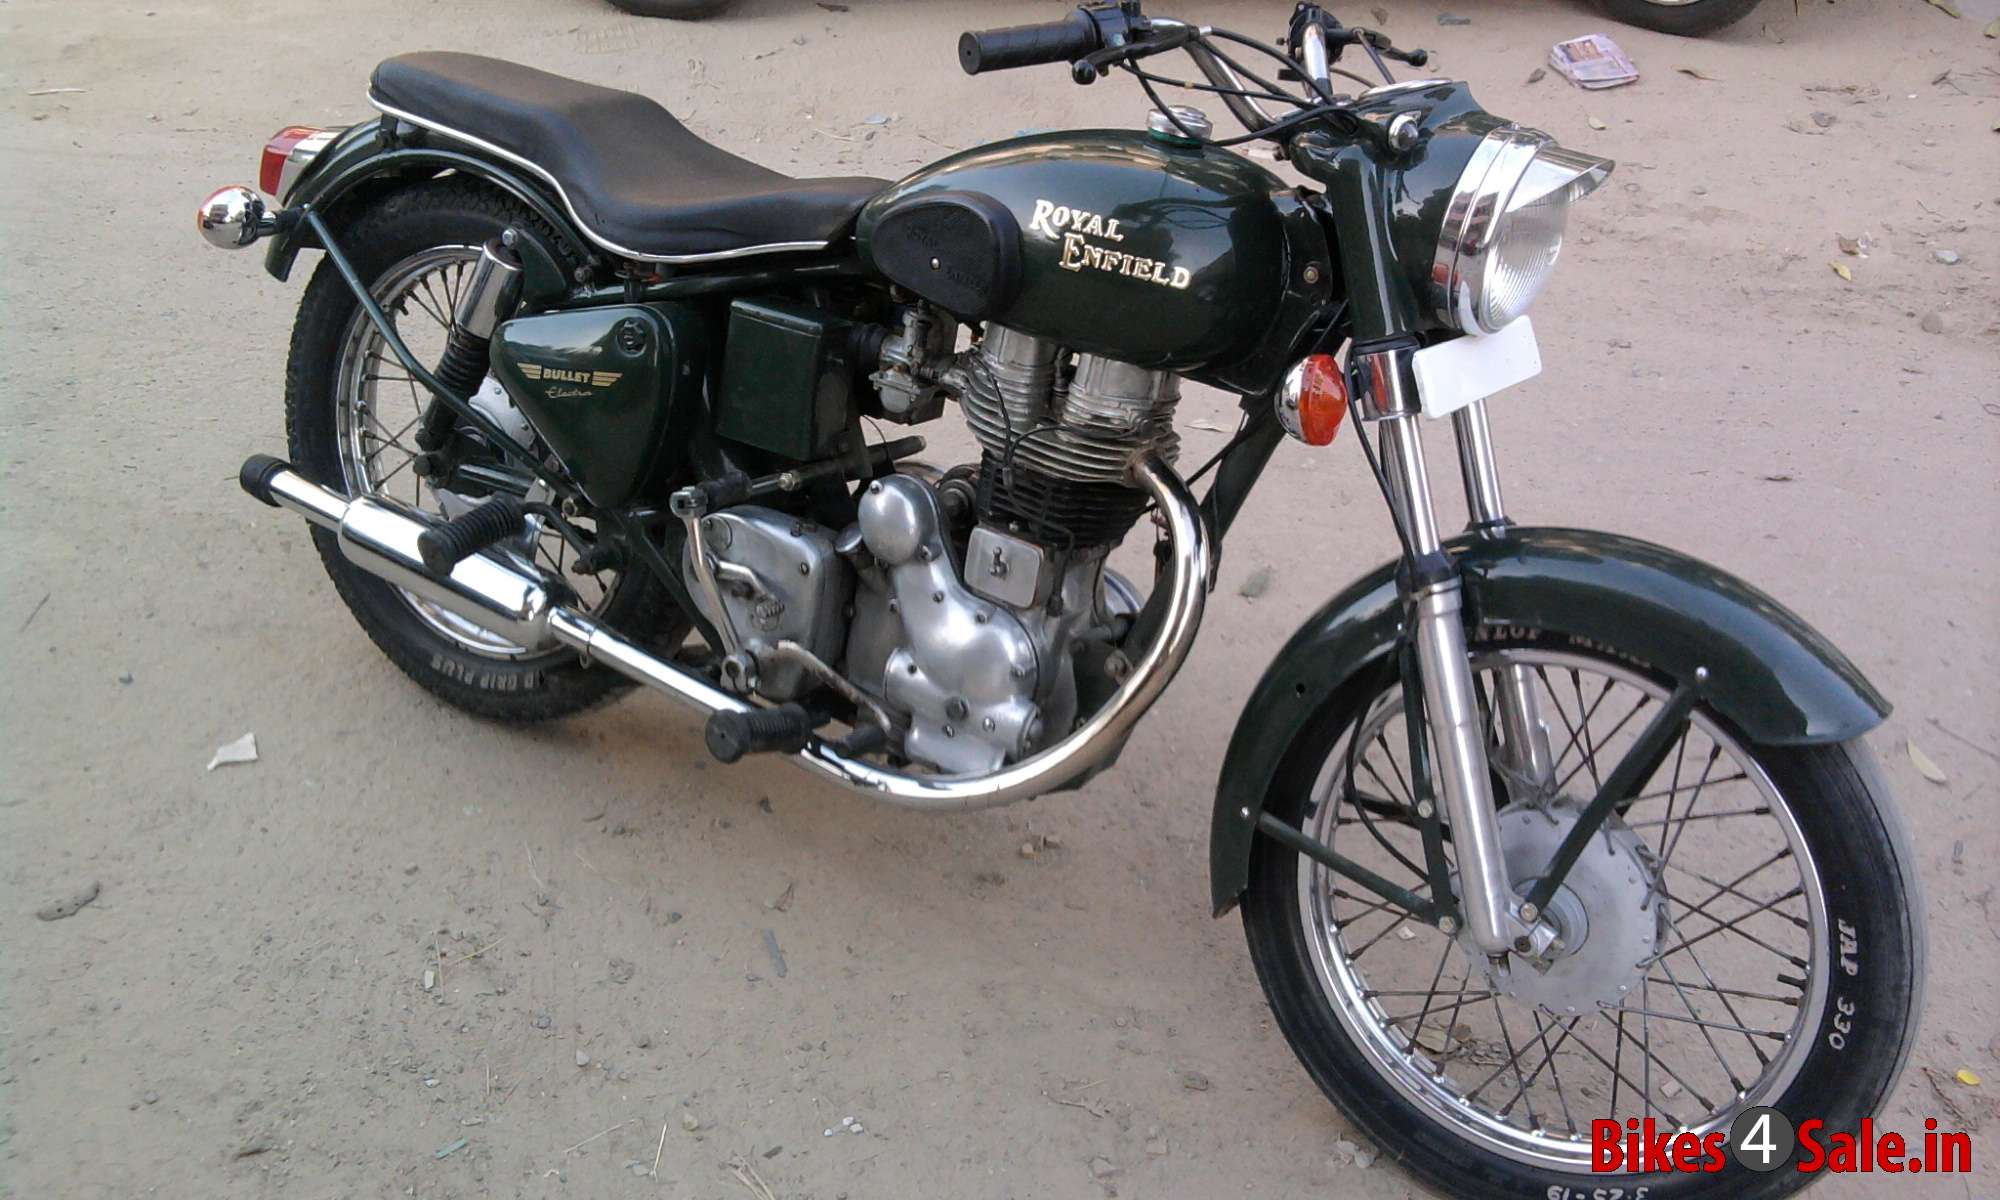 Royal Enfield Bullet 350 Army 1988 images #122595